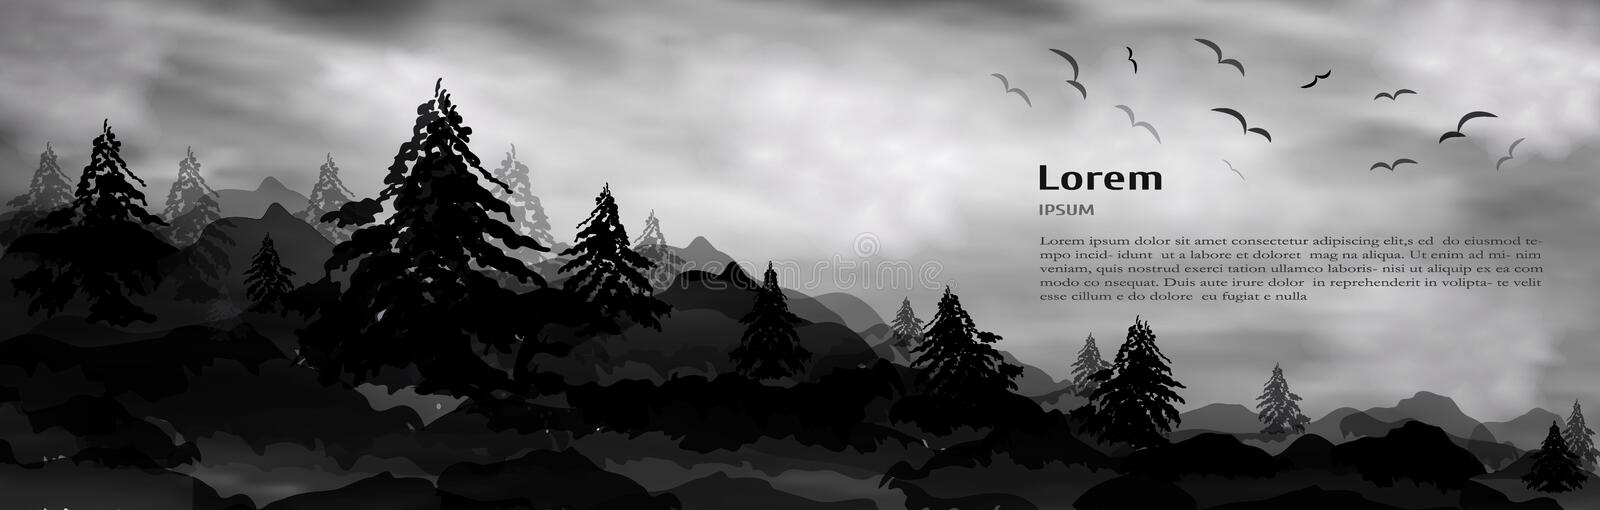 Realistic 3d banner, Christmas trees, trees, pines and high mountains place under text for design. natural landscape of white. Realistic 3d composition of trees vector illustration